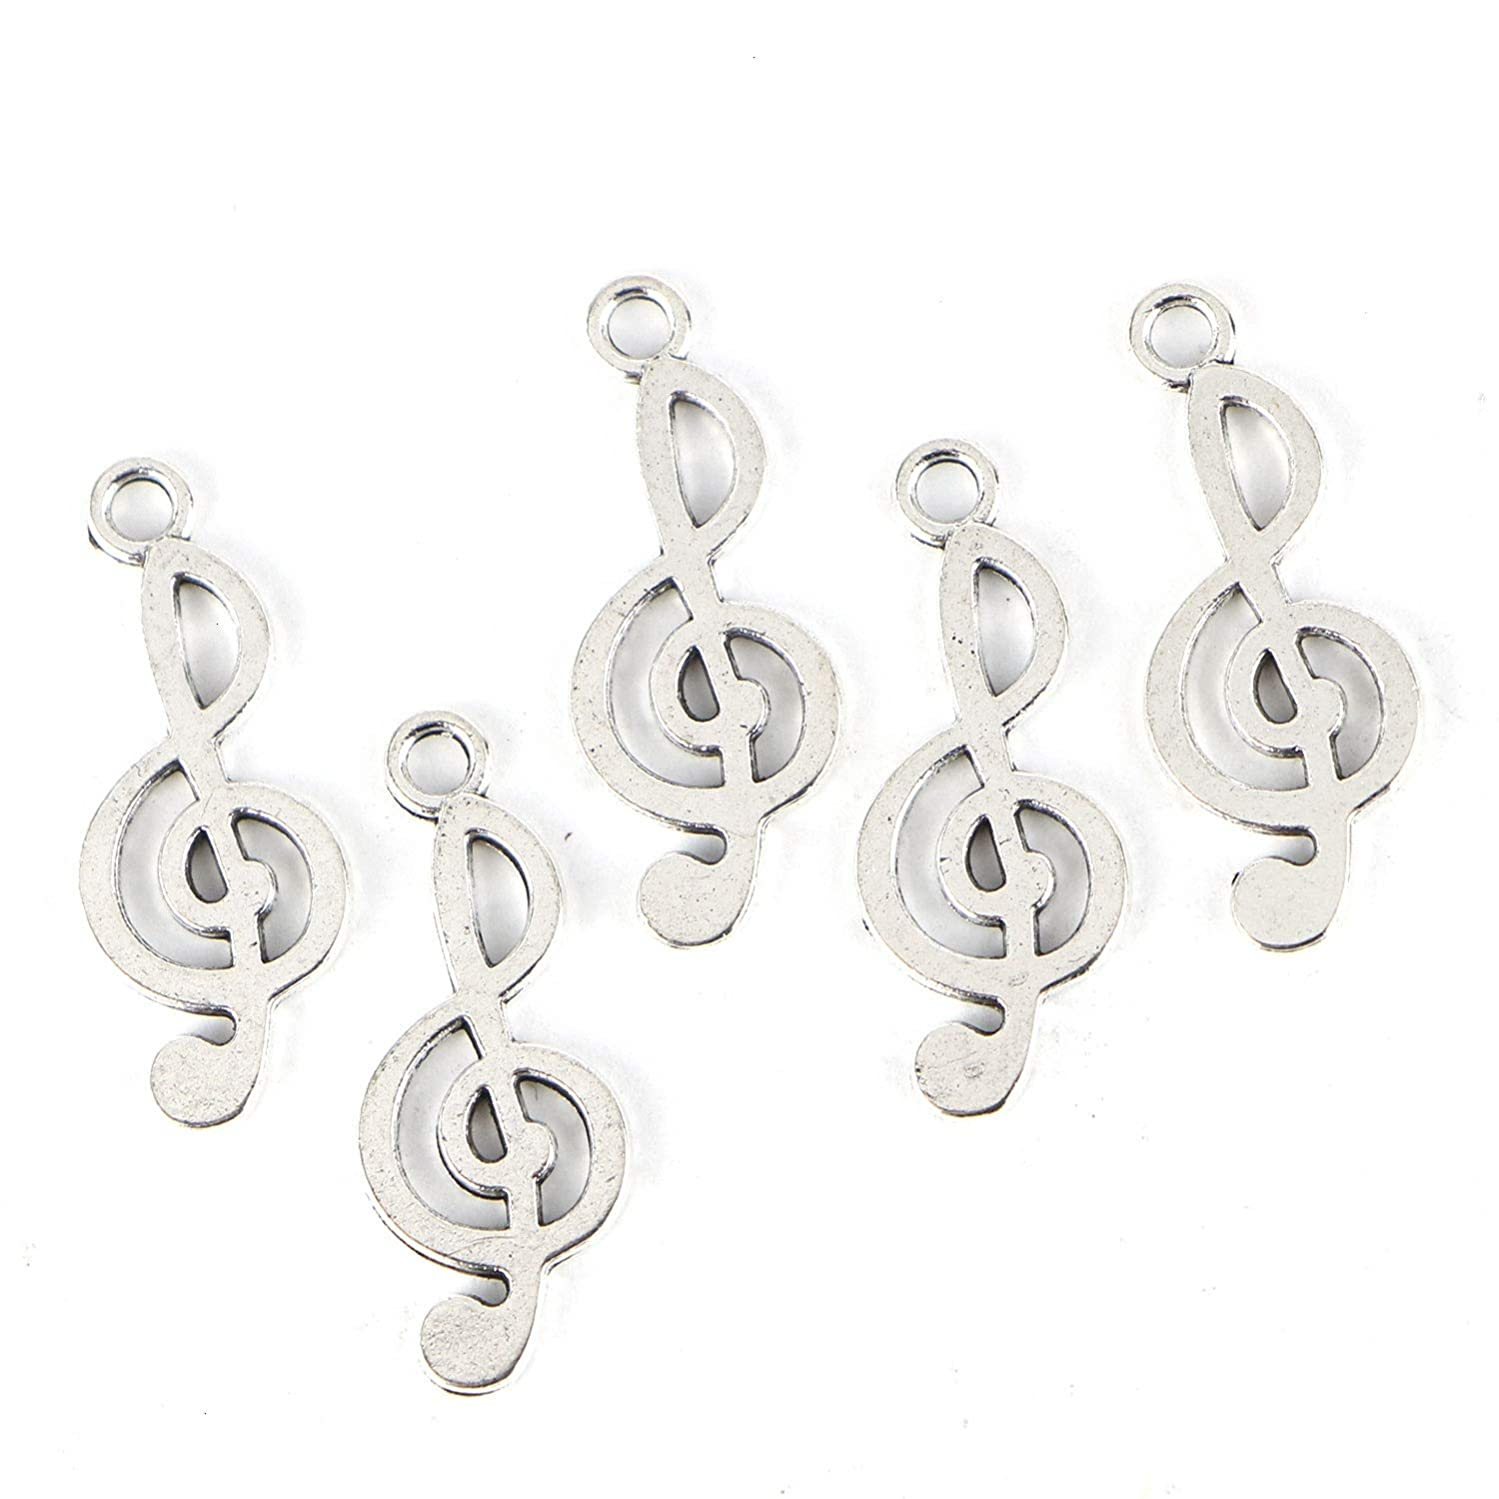 Monrocco 300PCS Music Notes Charm, Alloy Musical Notation Symbol Charm Pendant for DIY Jewelry Making Necklaces Bracelets Earring